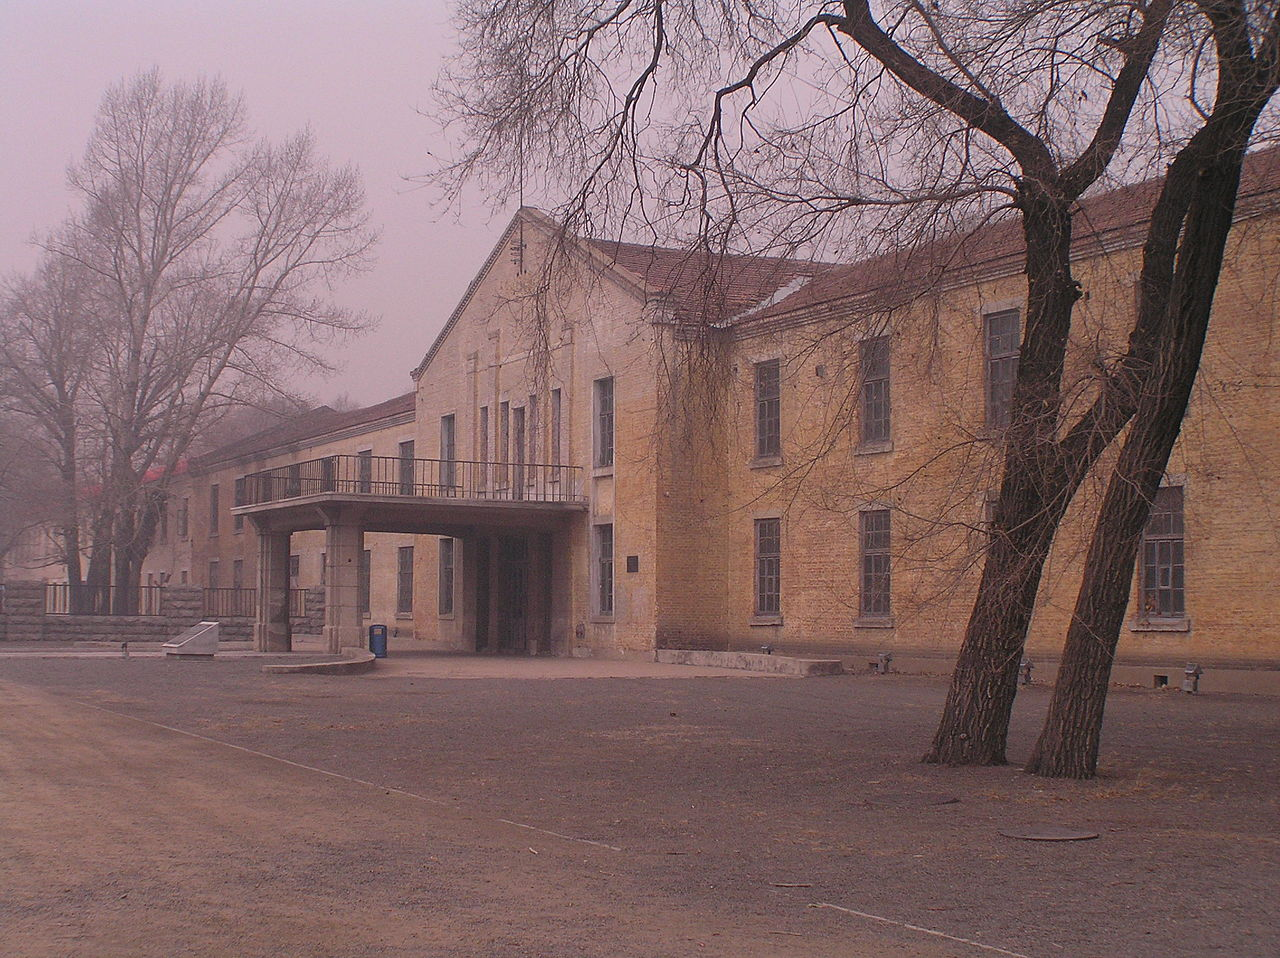 A building on the former Unit 731 property in China.